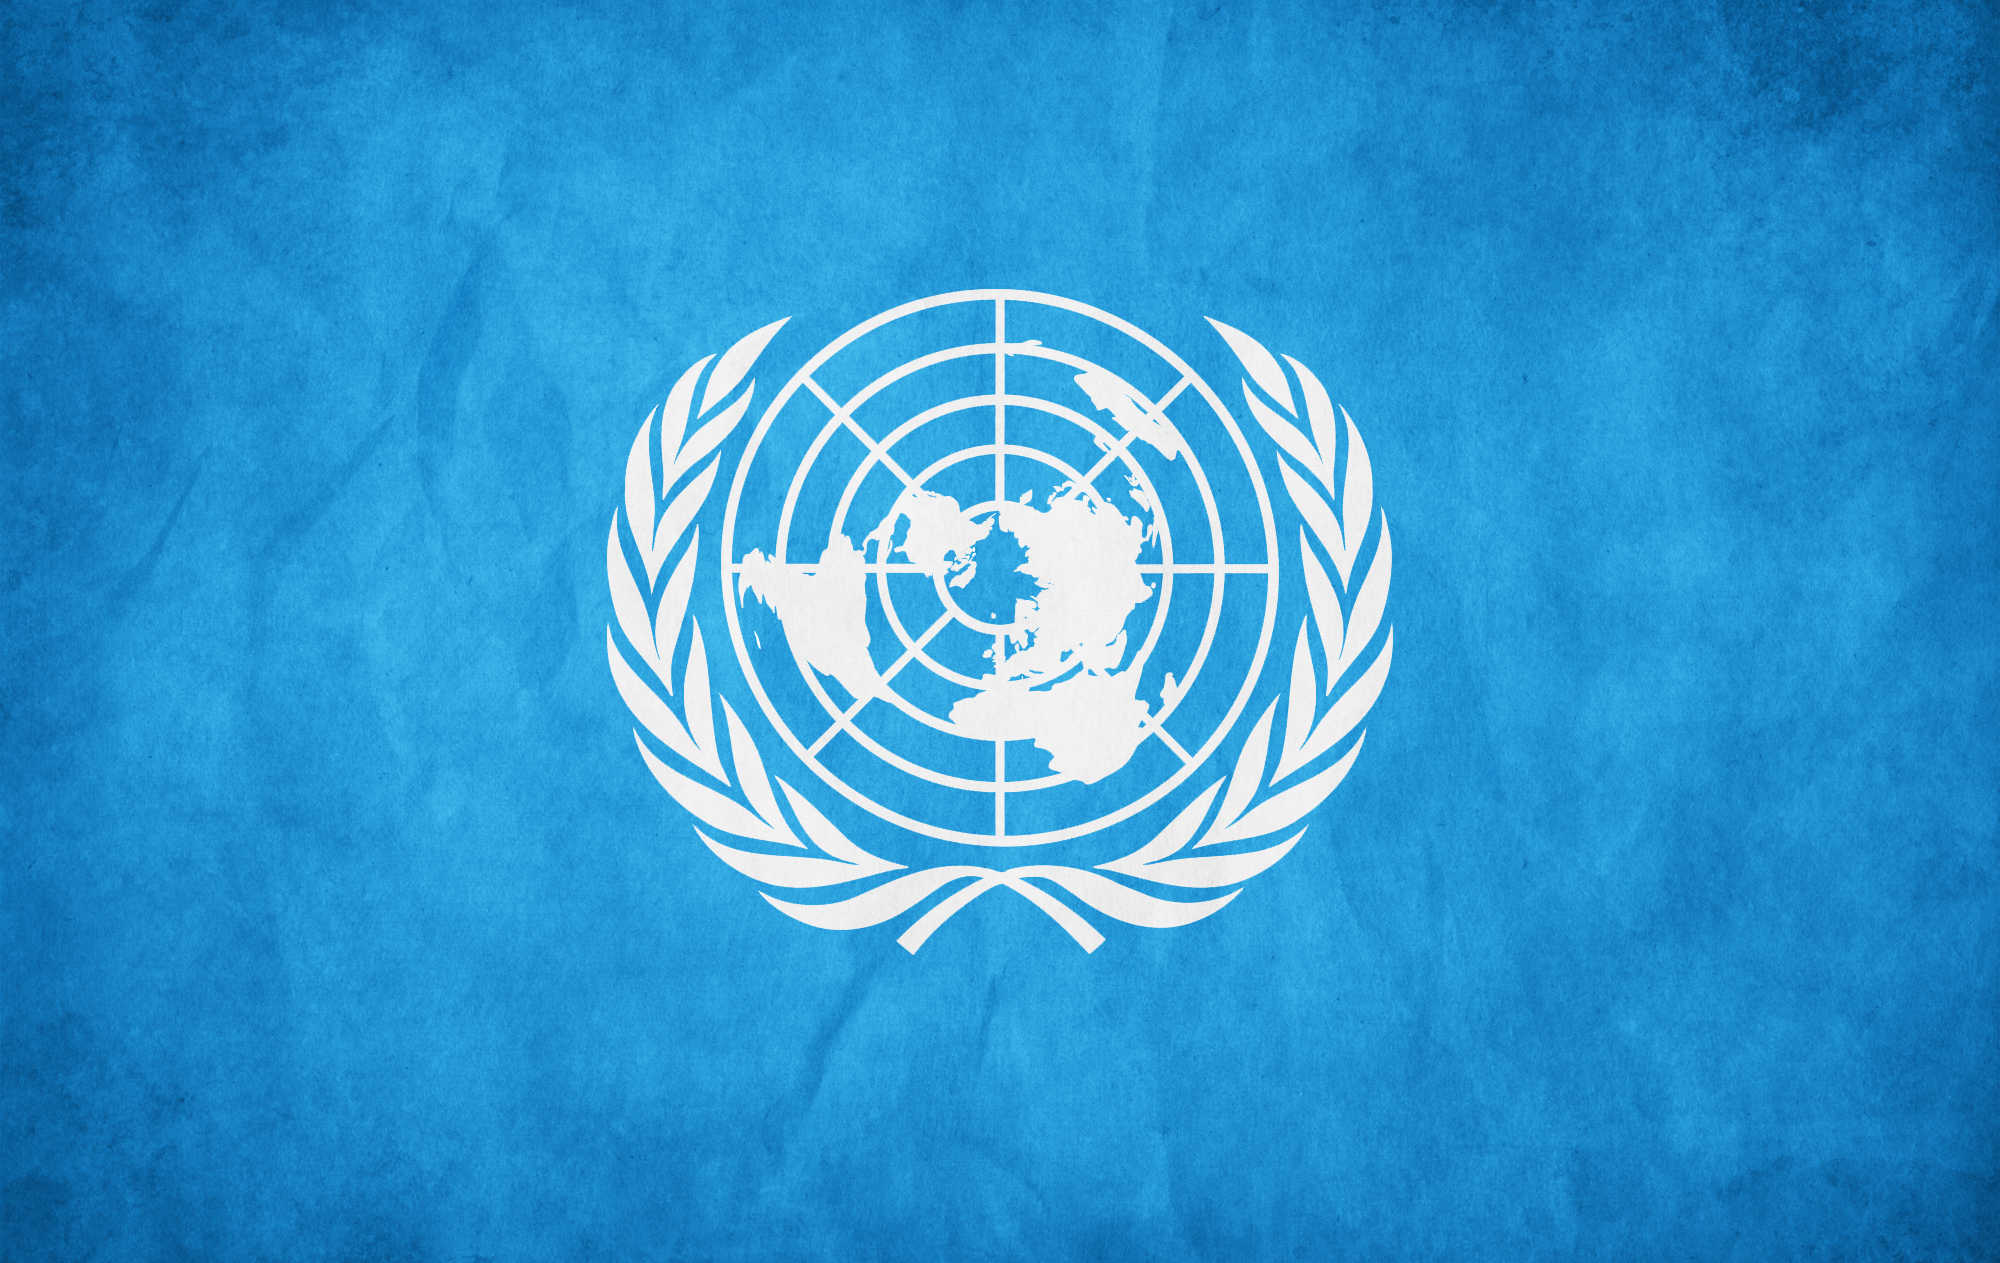 UN and Renewables